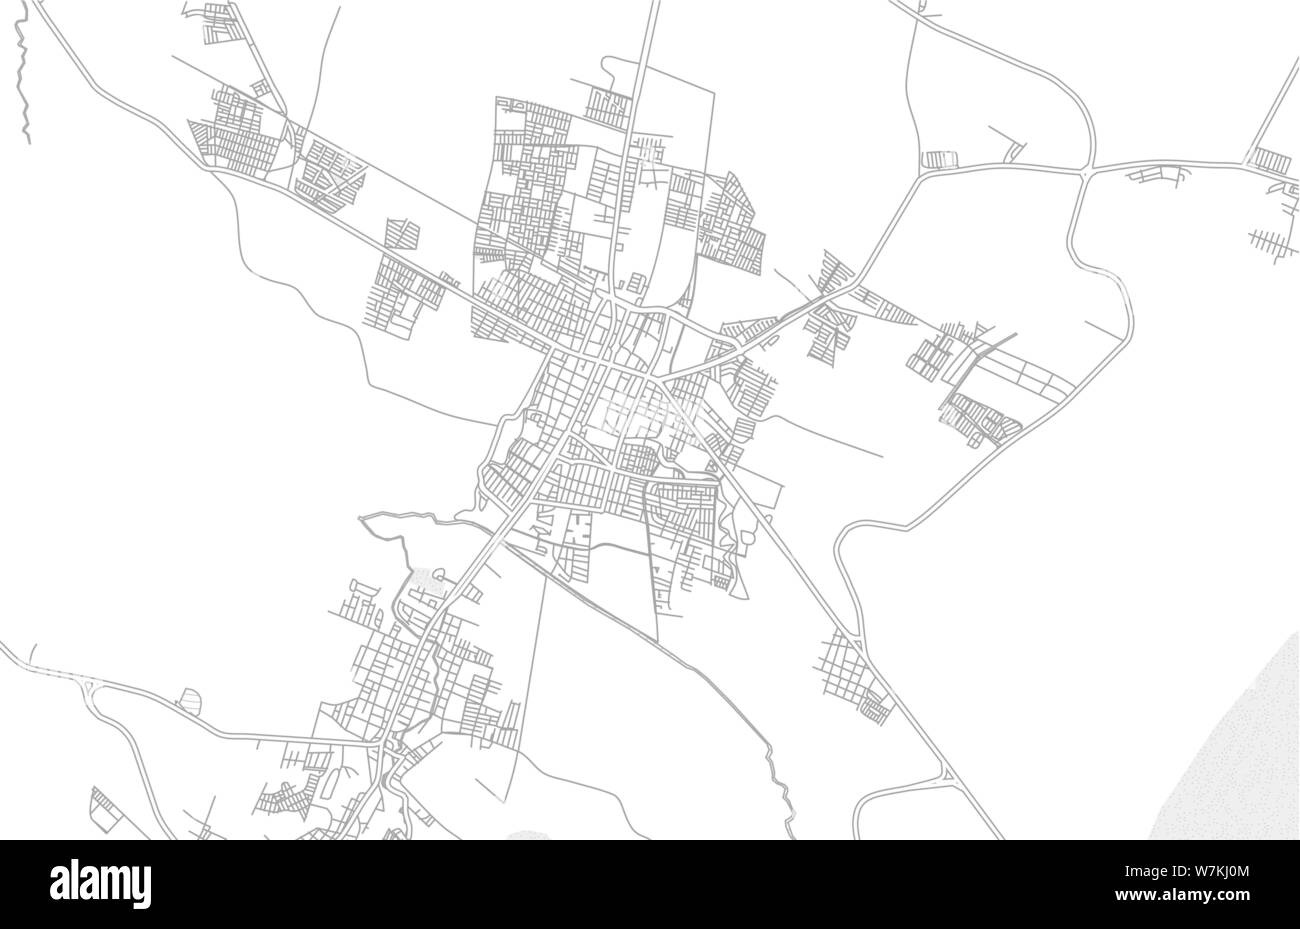 Zamora, Michoacán, Mexico, bright outlined vector map with ...